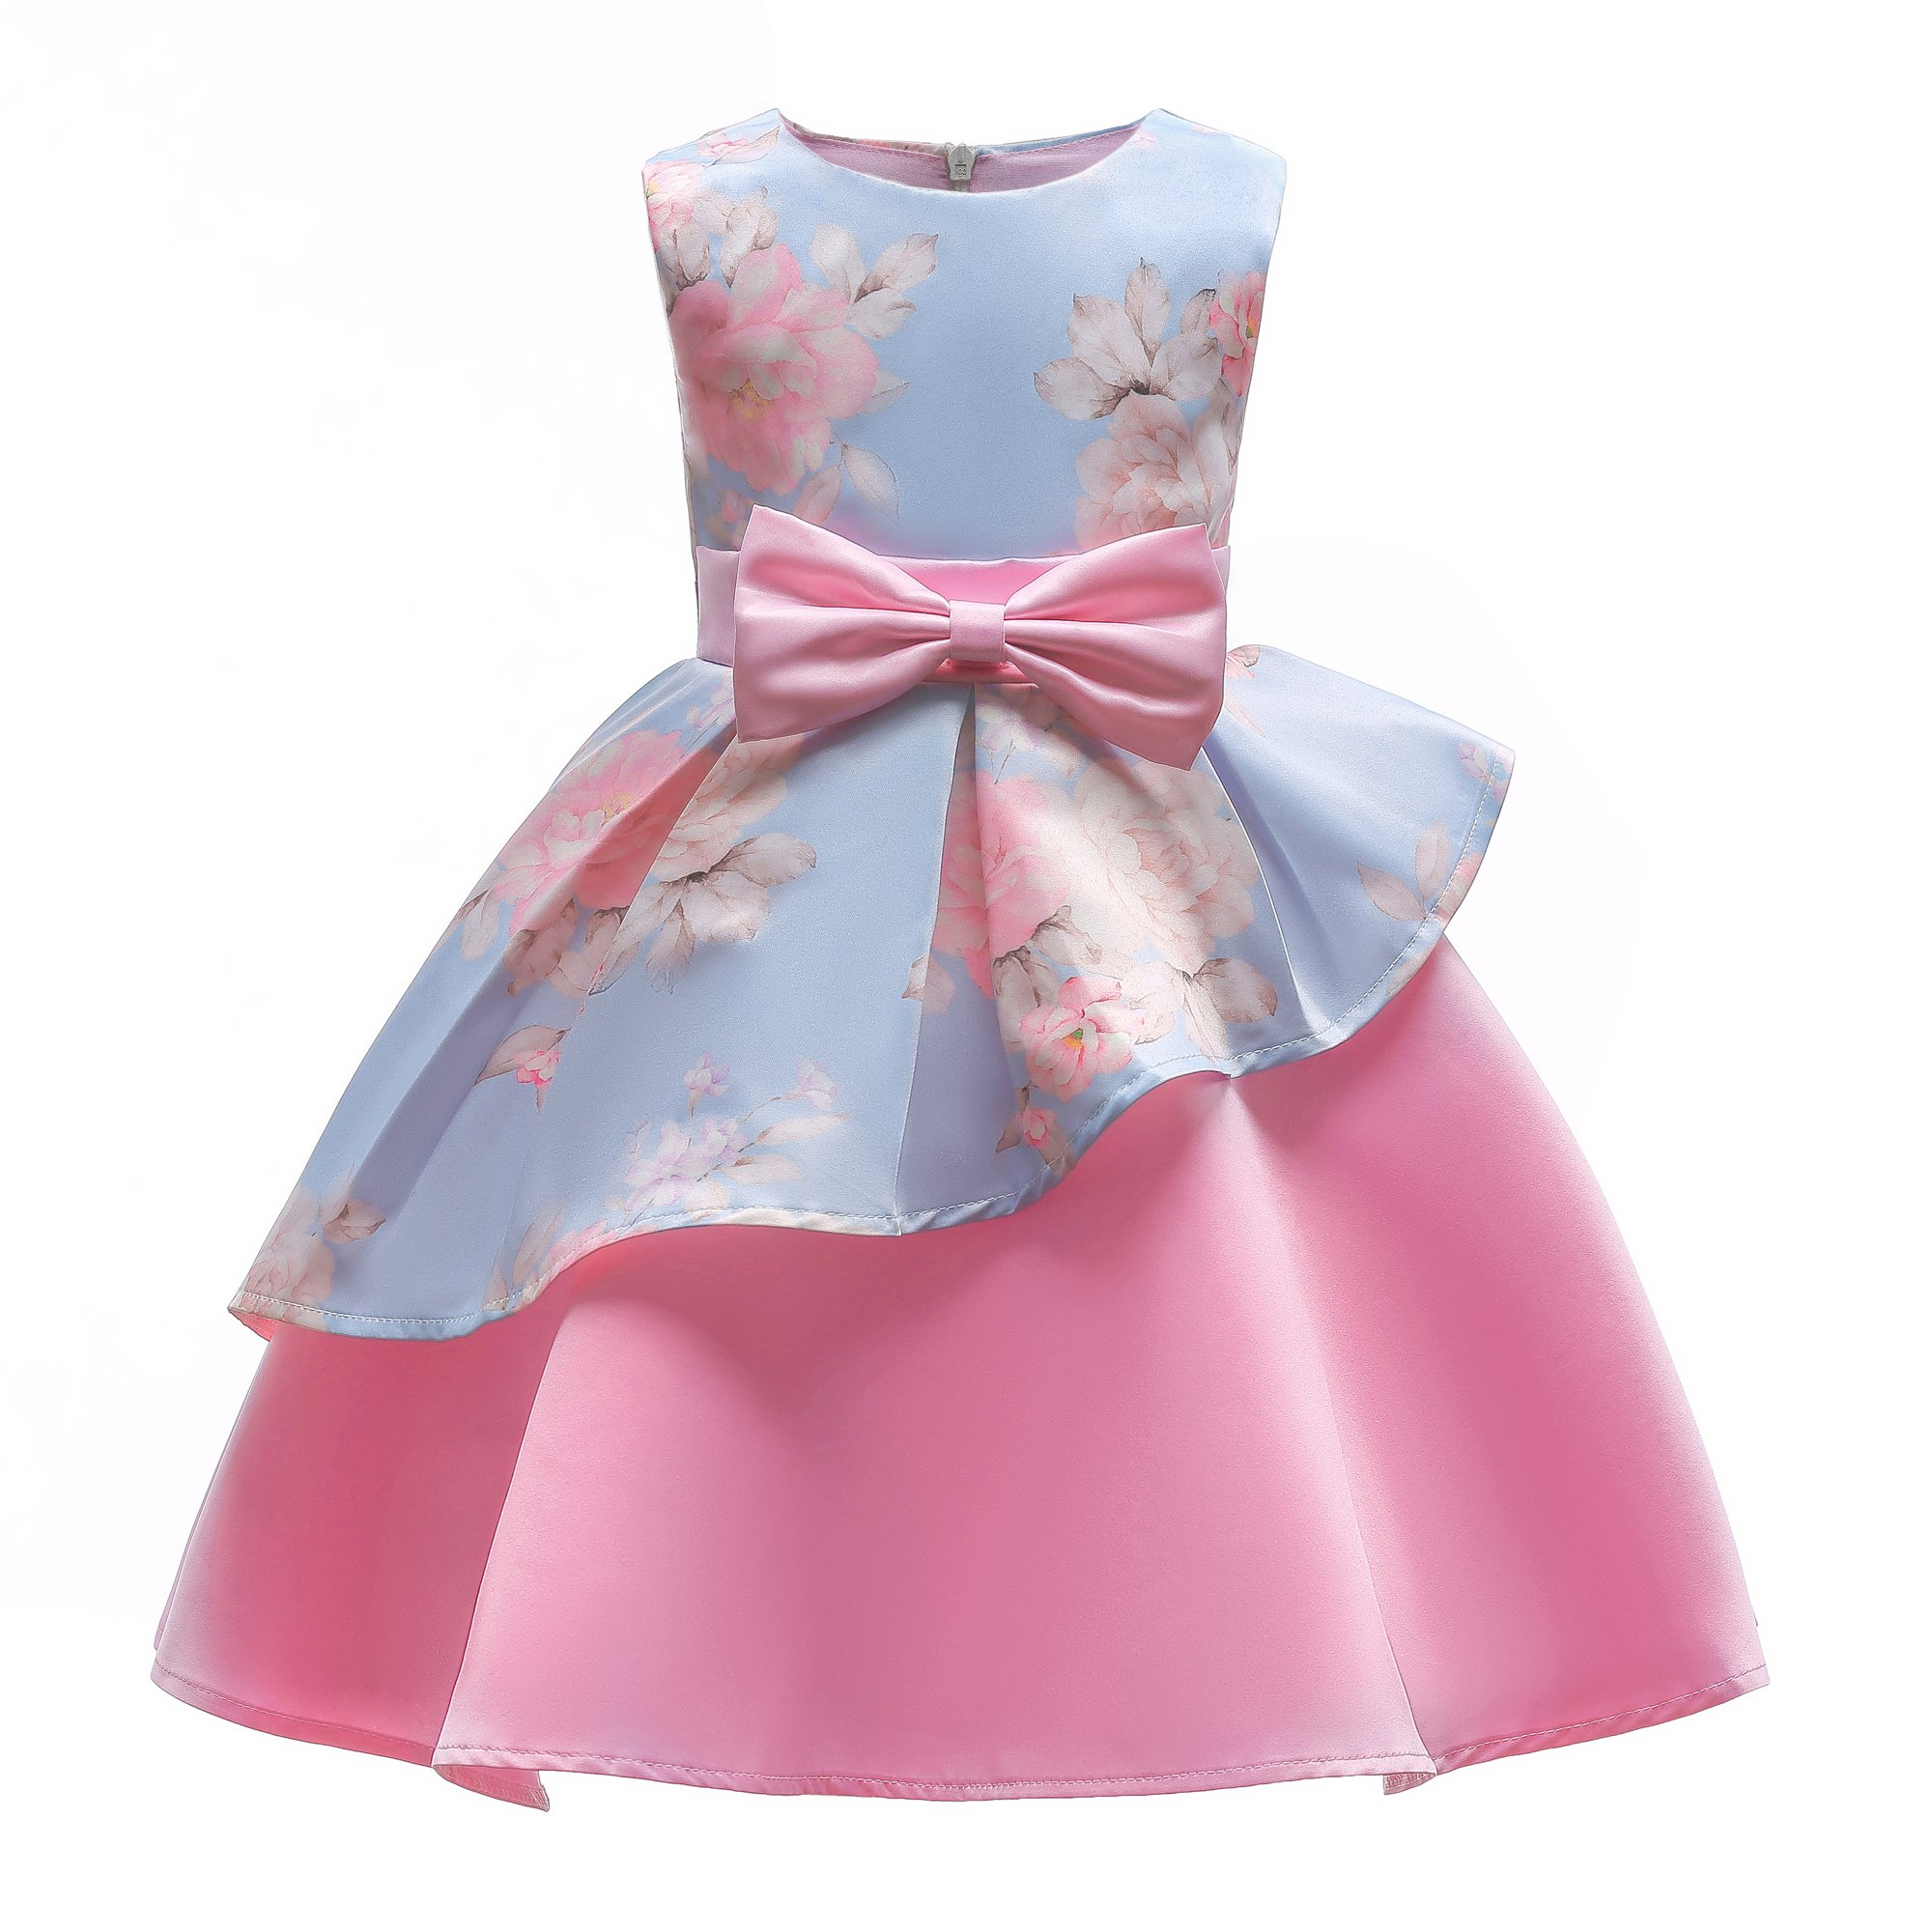 YCJemu Flower Girls Dresses Kids Floral Print Party Dress Princess Gowns Bow Party Wedding Dresses,Blue,5-6 Tall